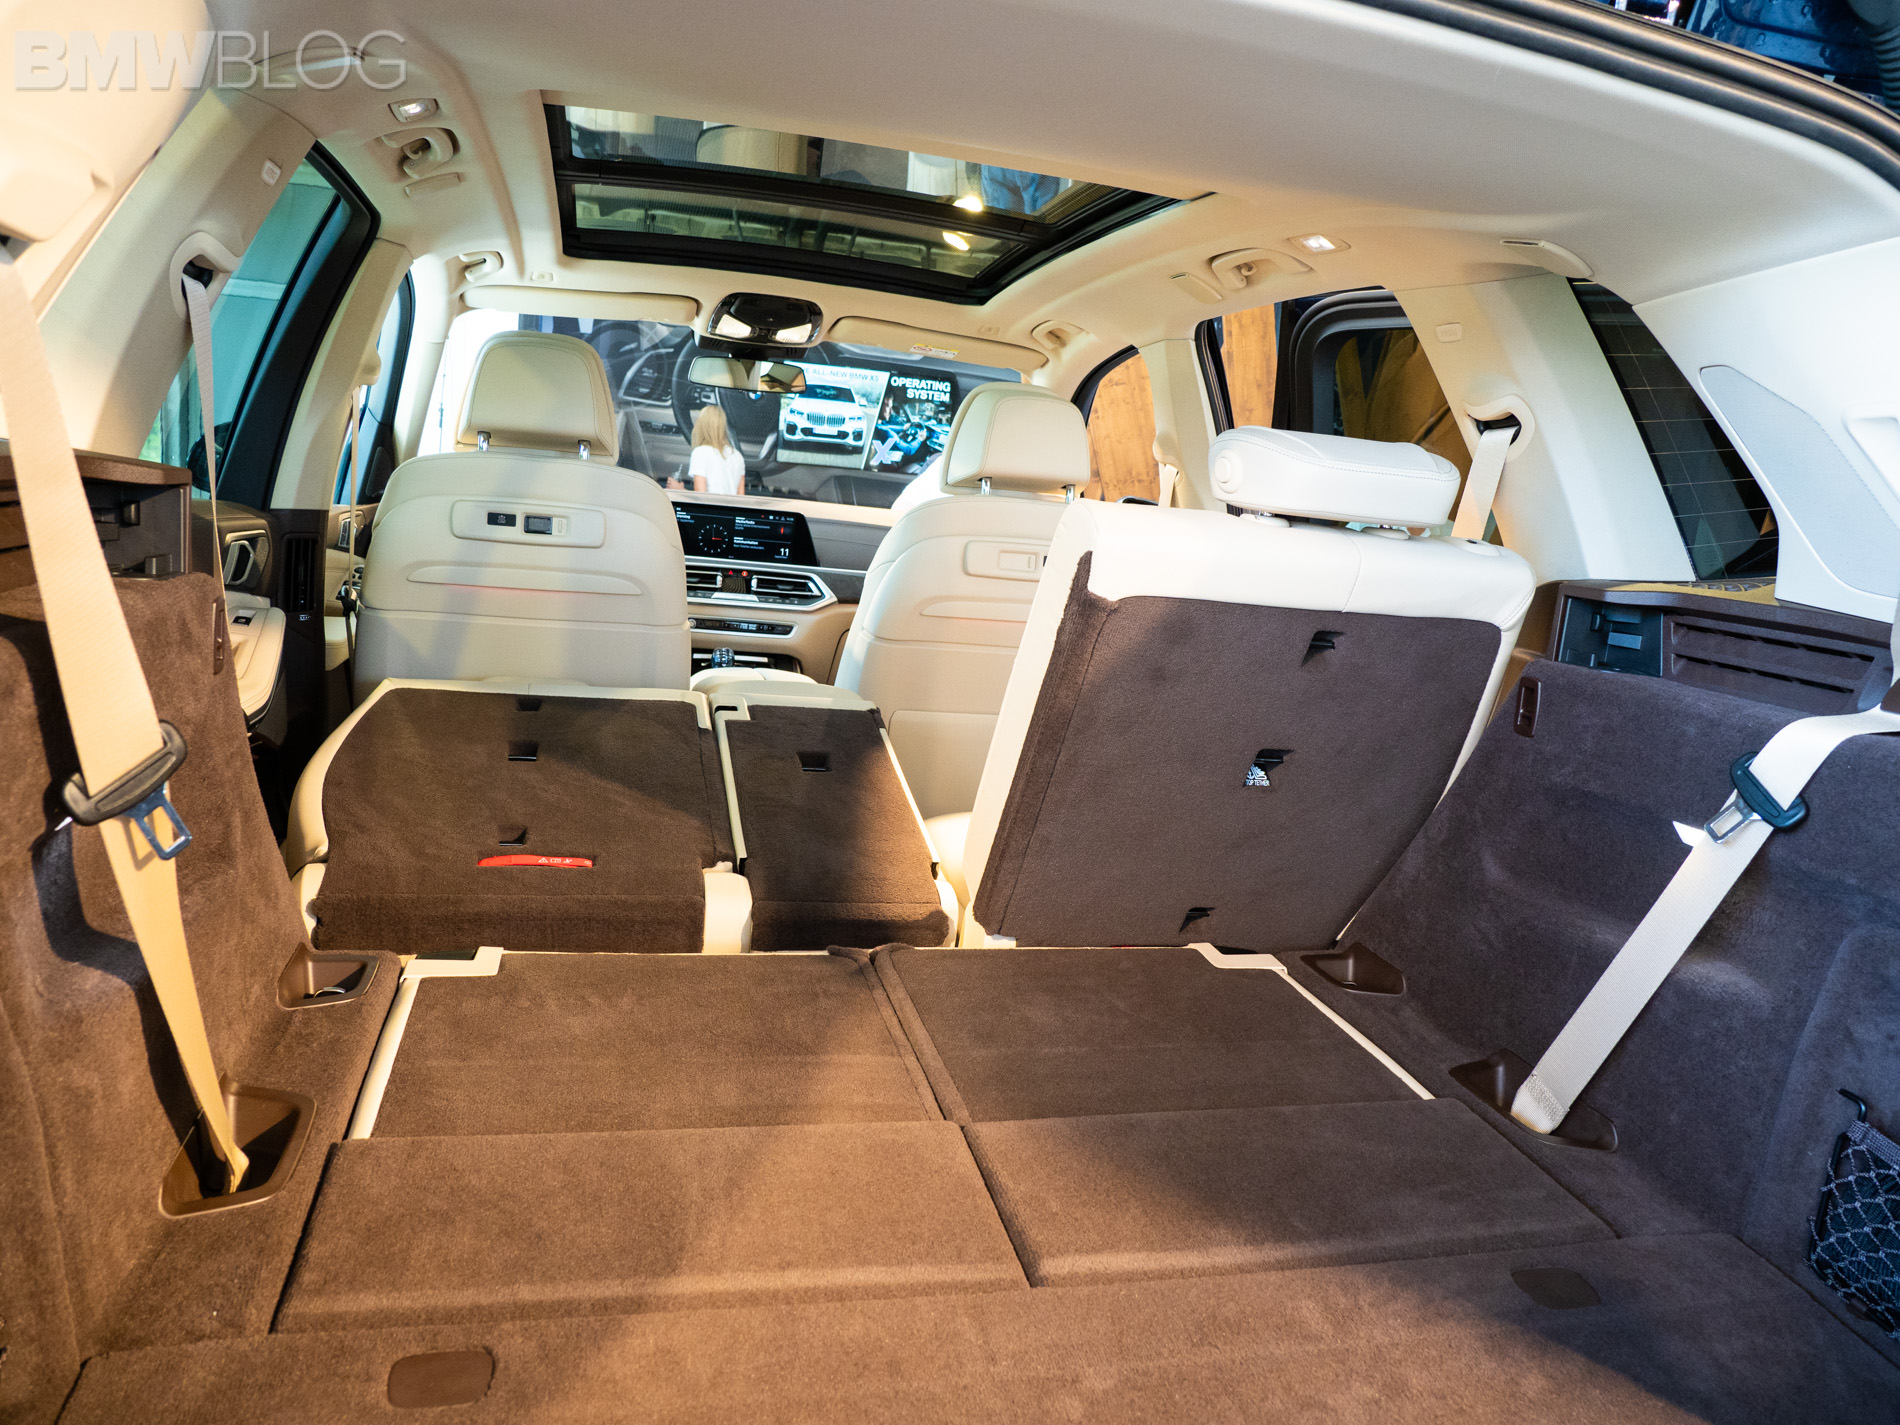 BMW With 3Rd Row Seating >> First Look At The Third Row Seat In The New Bmw X5